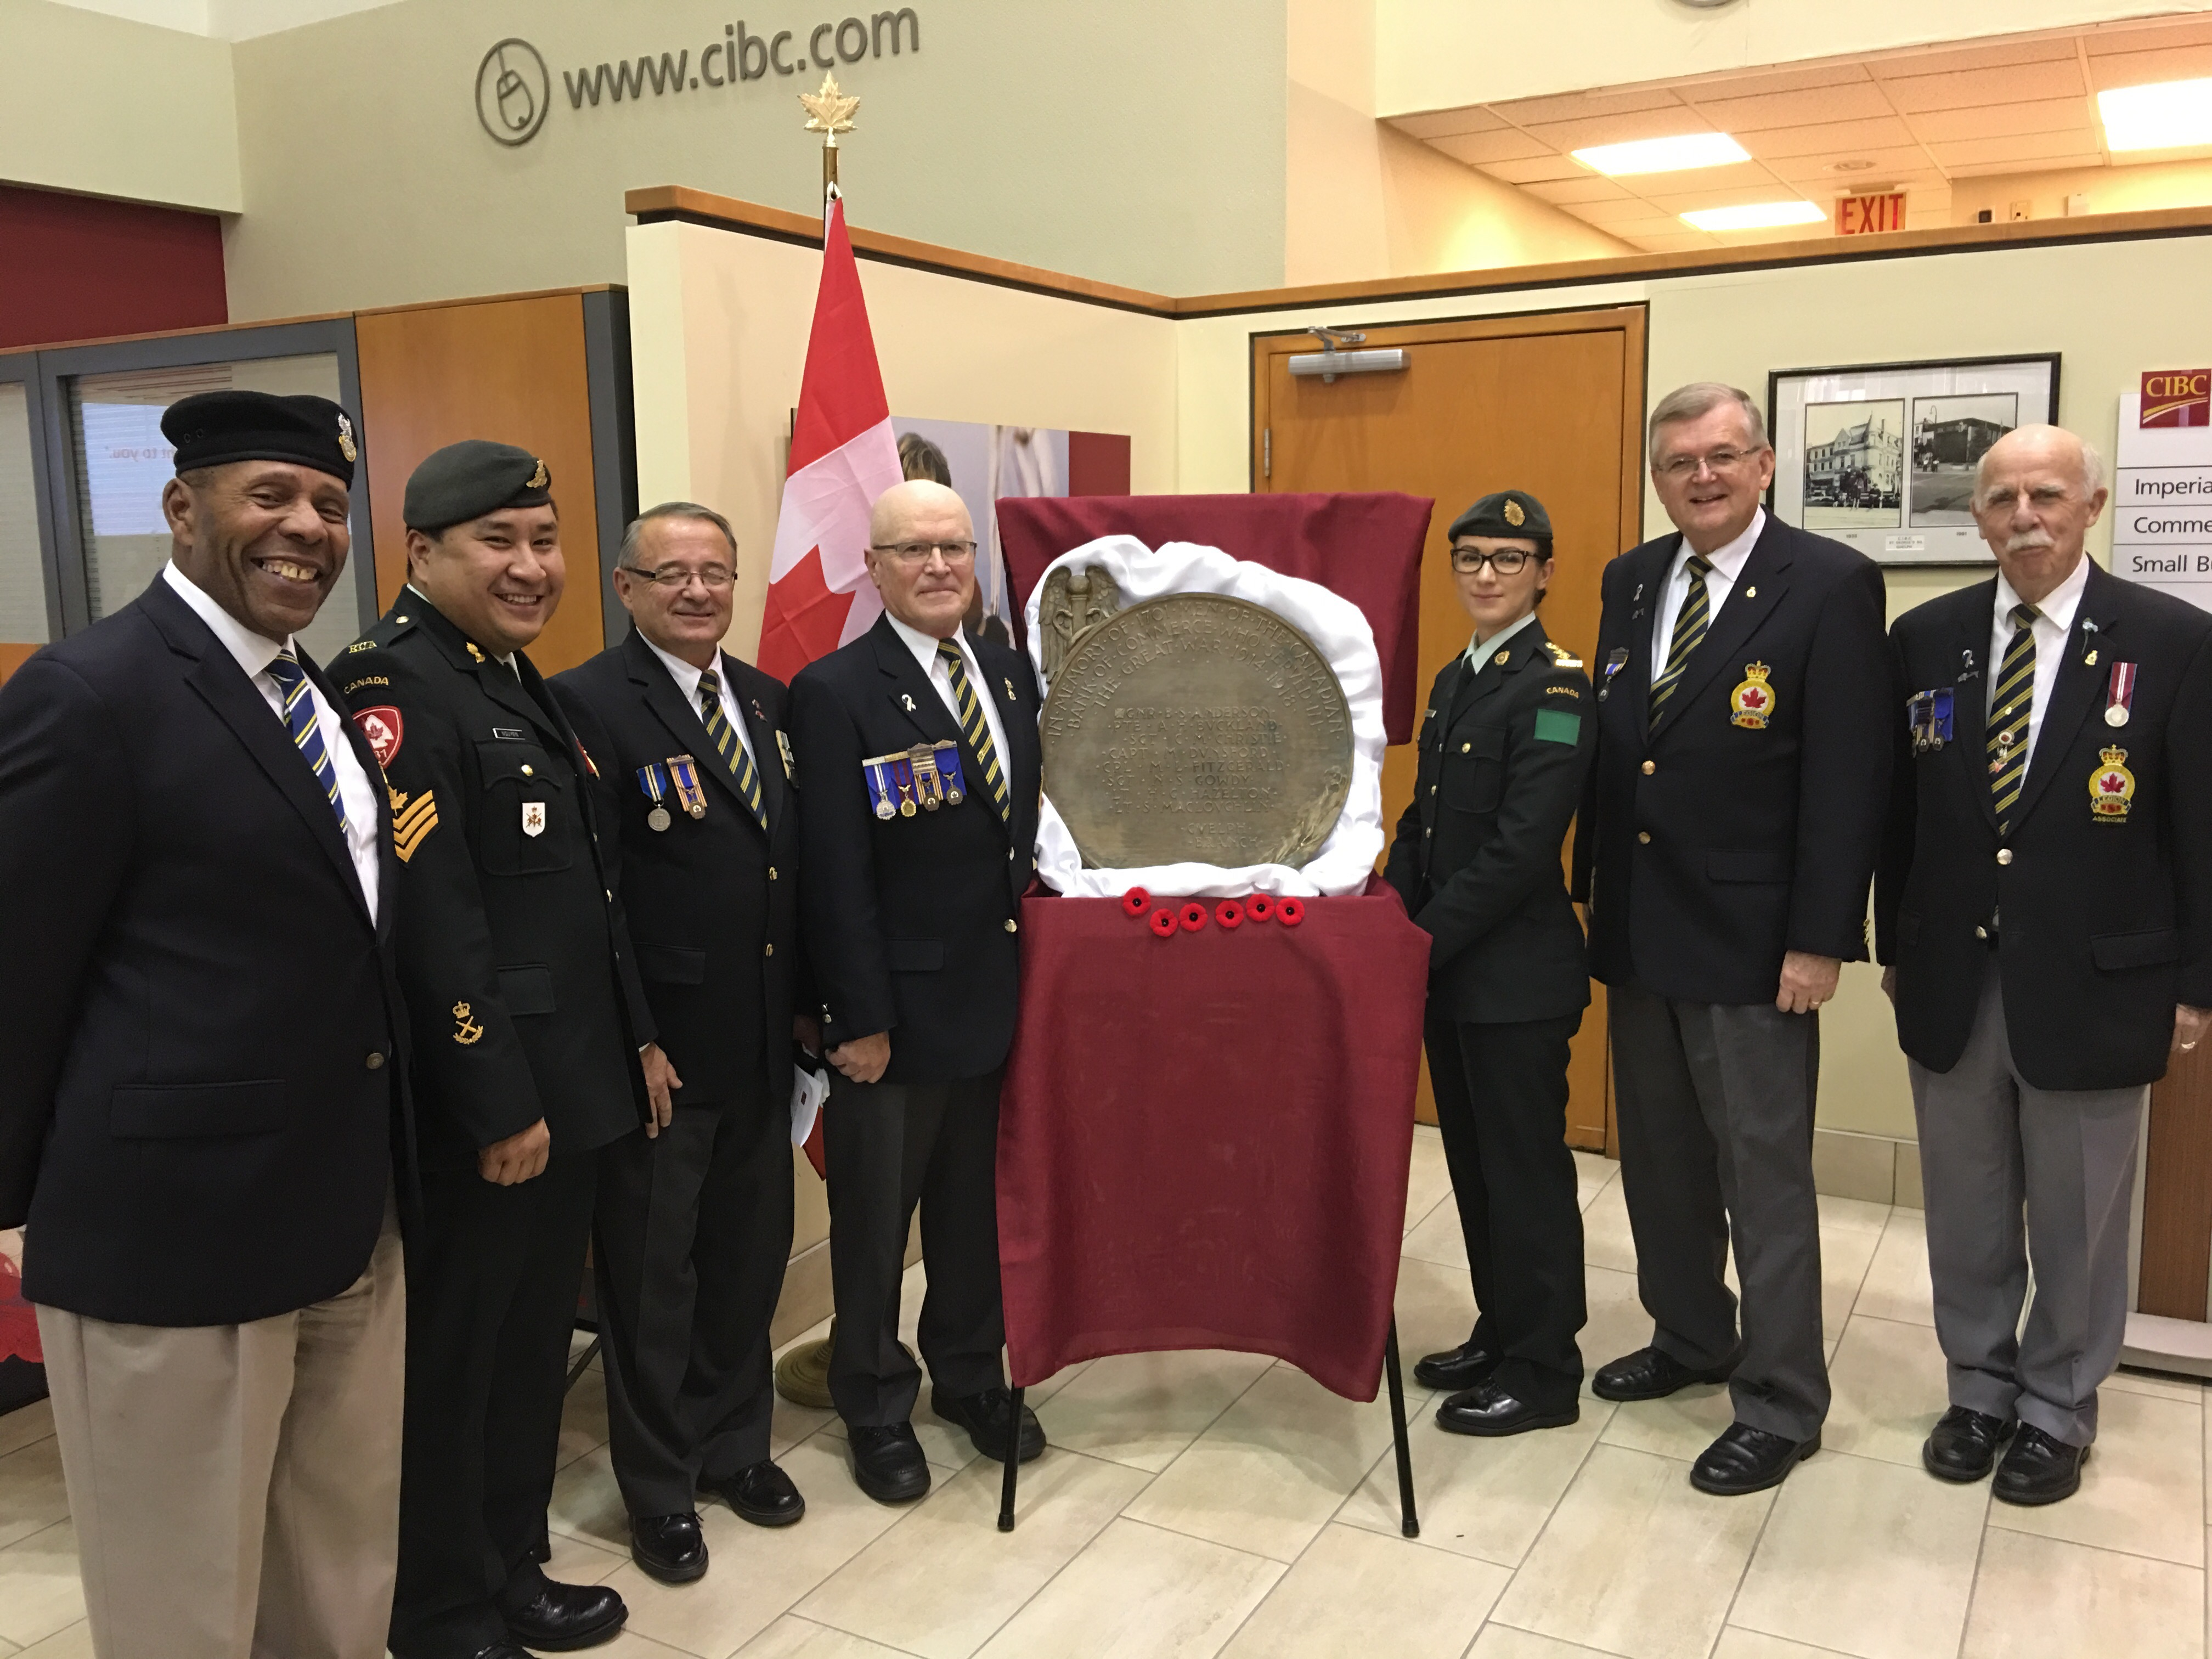 VIDEO CIBC Rededicates WW Heroes With Found yr Old Guelph Img  Video Cibc Rededicates Ww Heroes With Found yr Old Guelph Plaque